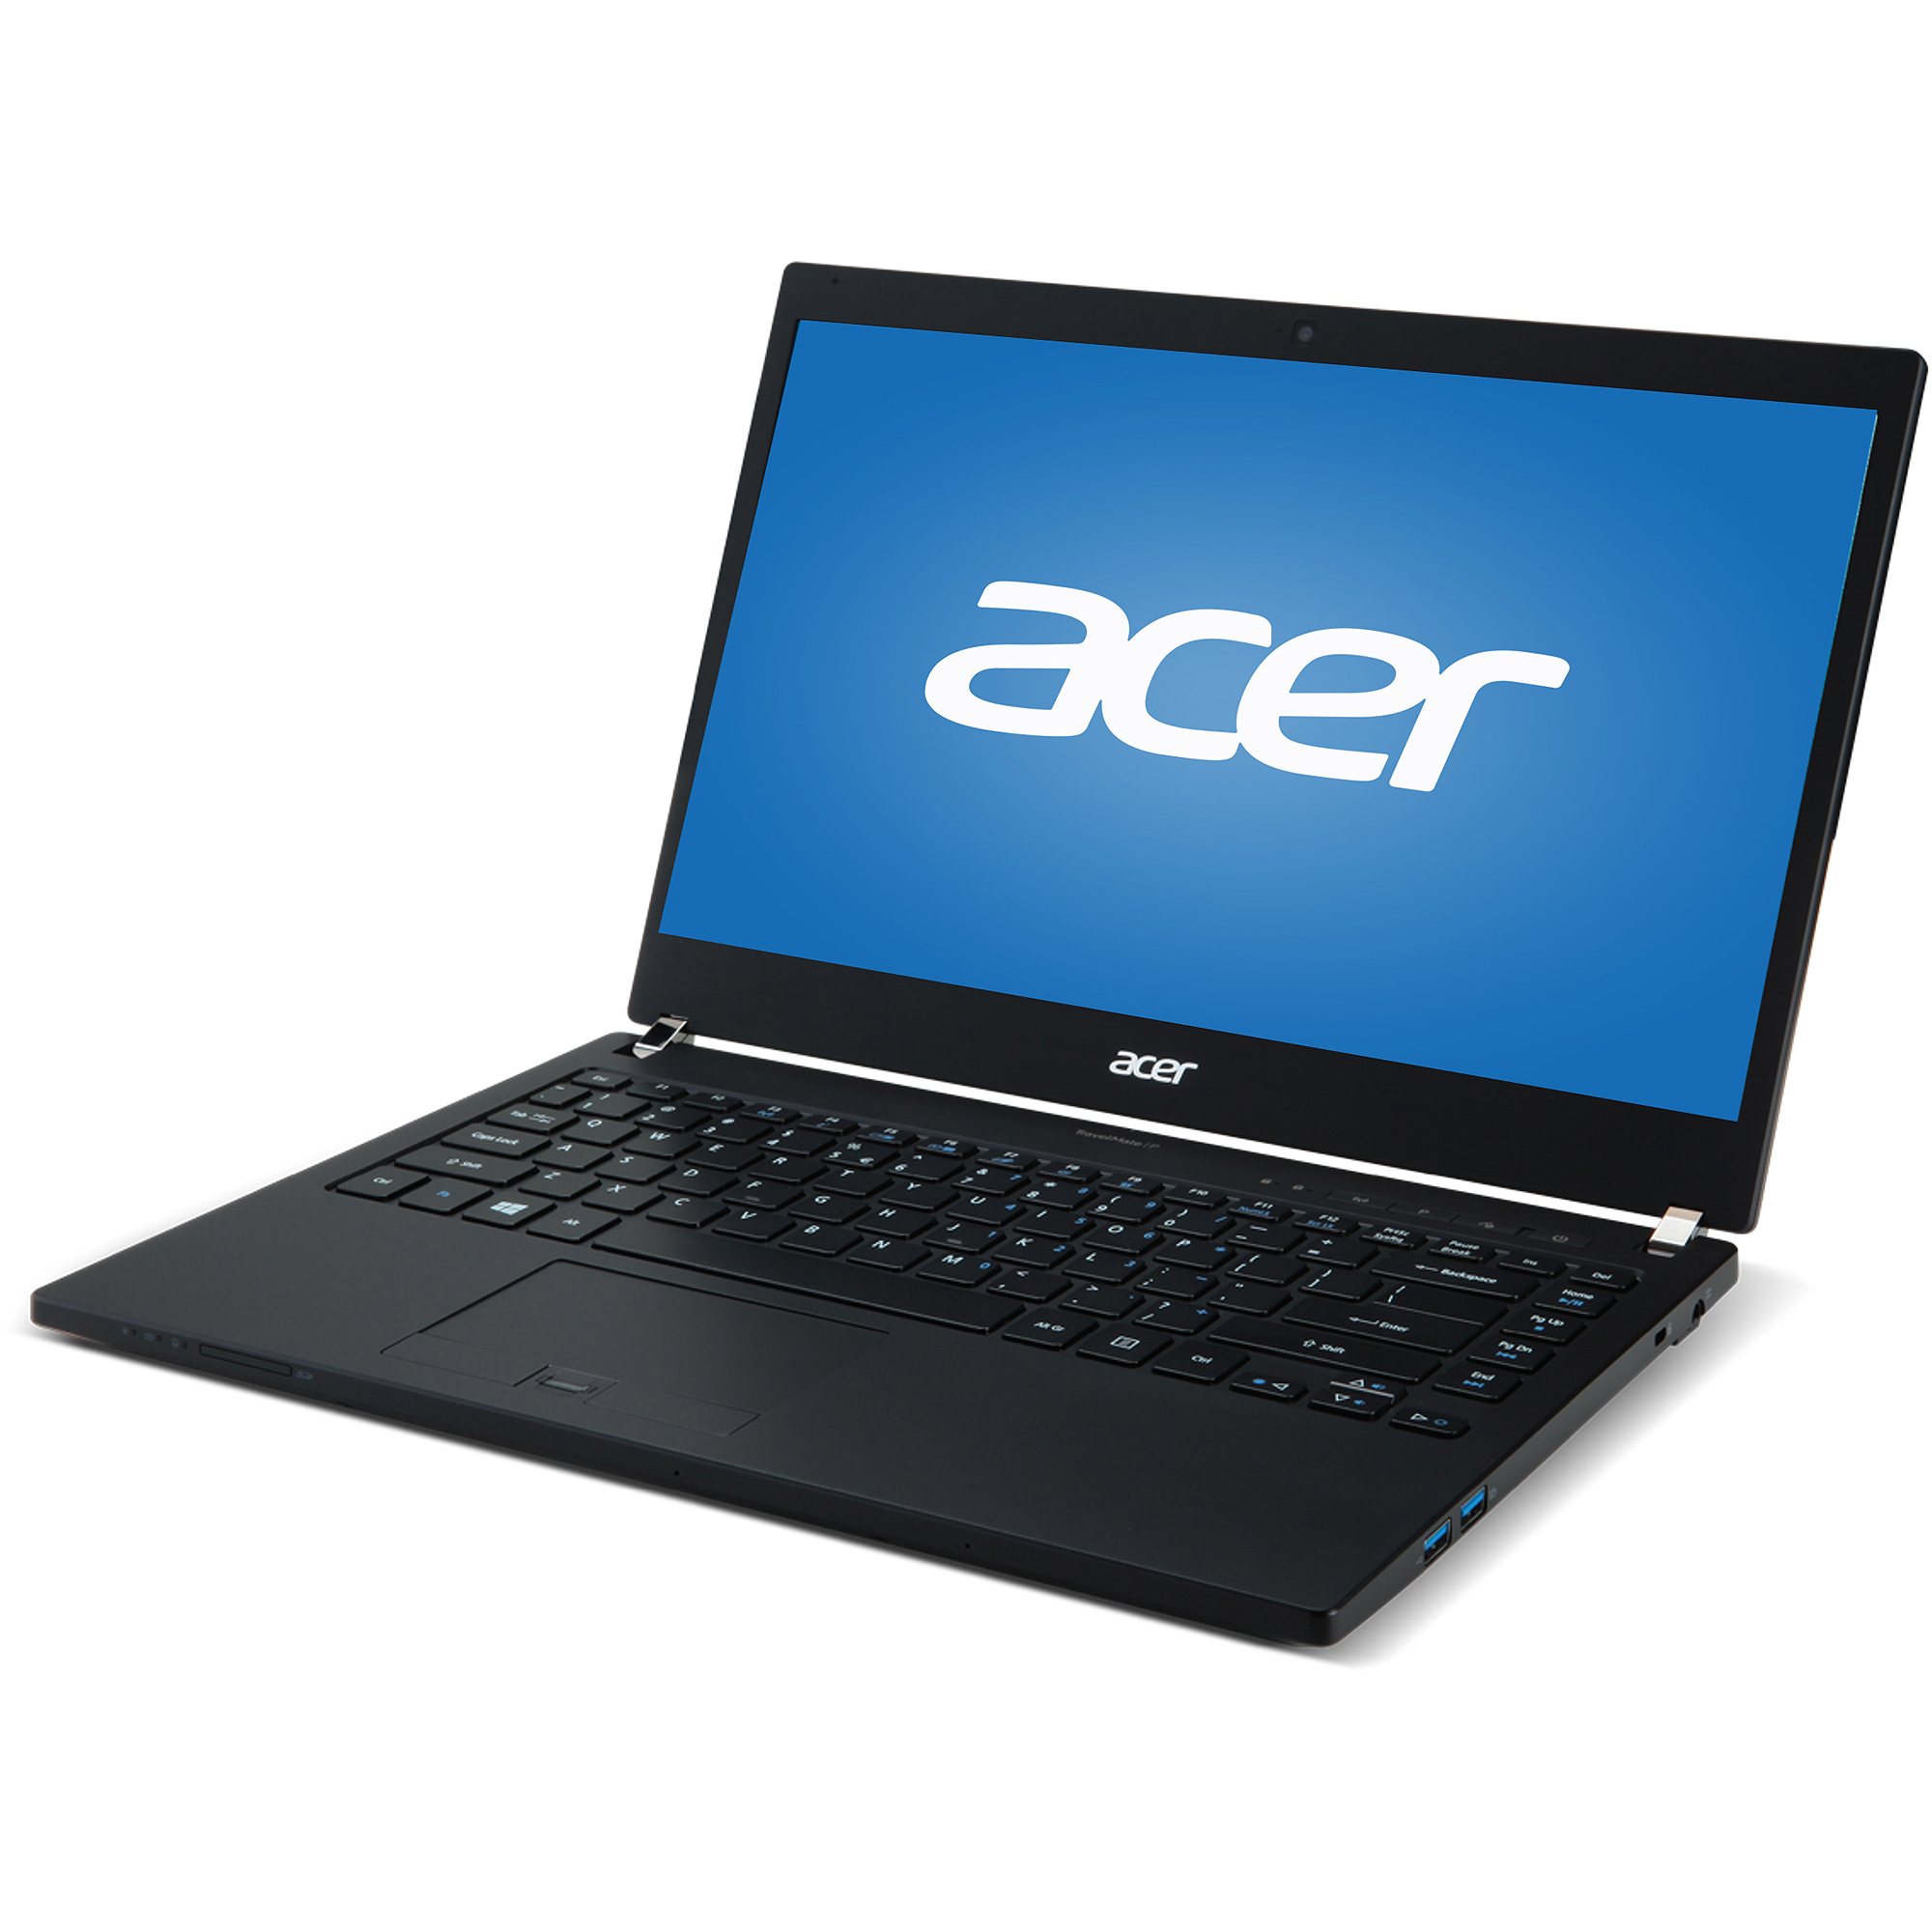 "Acer Black 14"" TravelMate P6 TMP645-MG-5409 Laptop PC with Intel Core i5-4200U Dual-Core Processor, 8GB Memory, 128GB SSD and Windows 7 Professional"